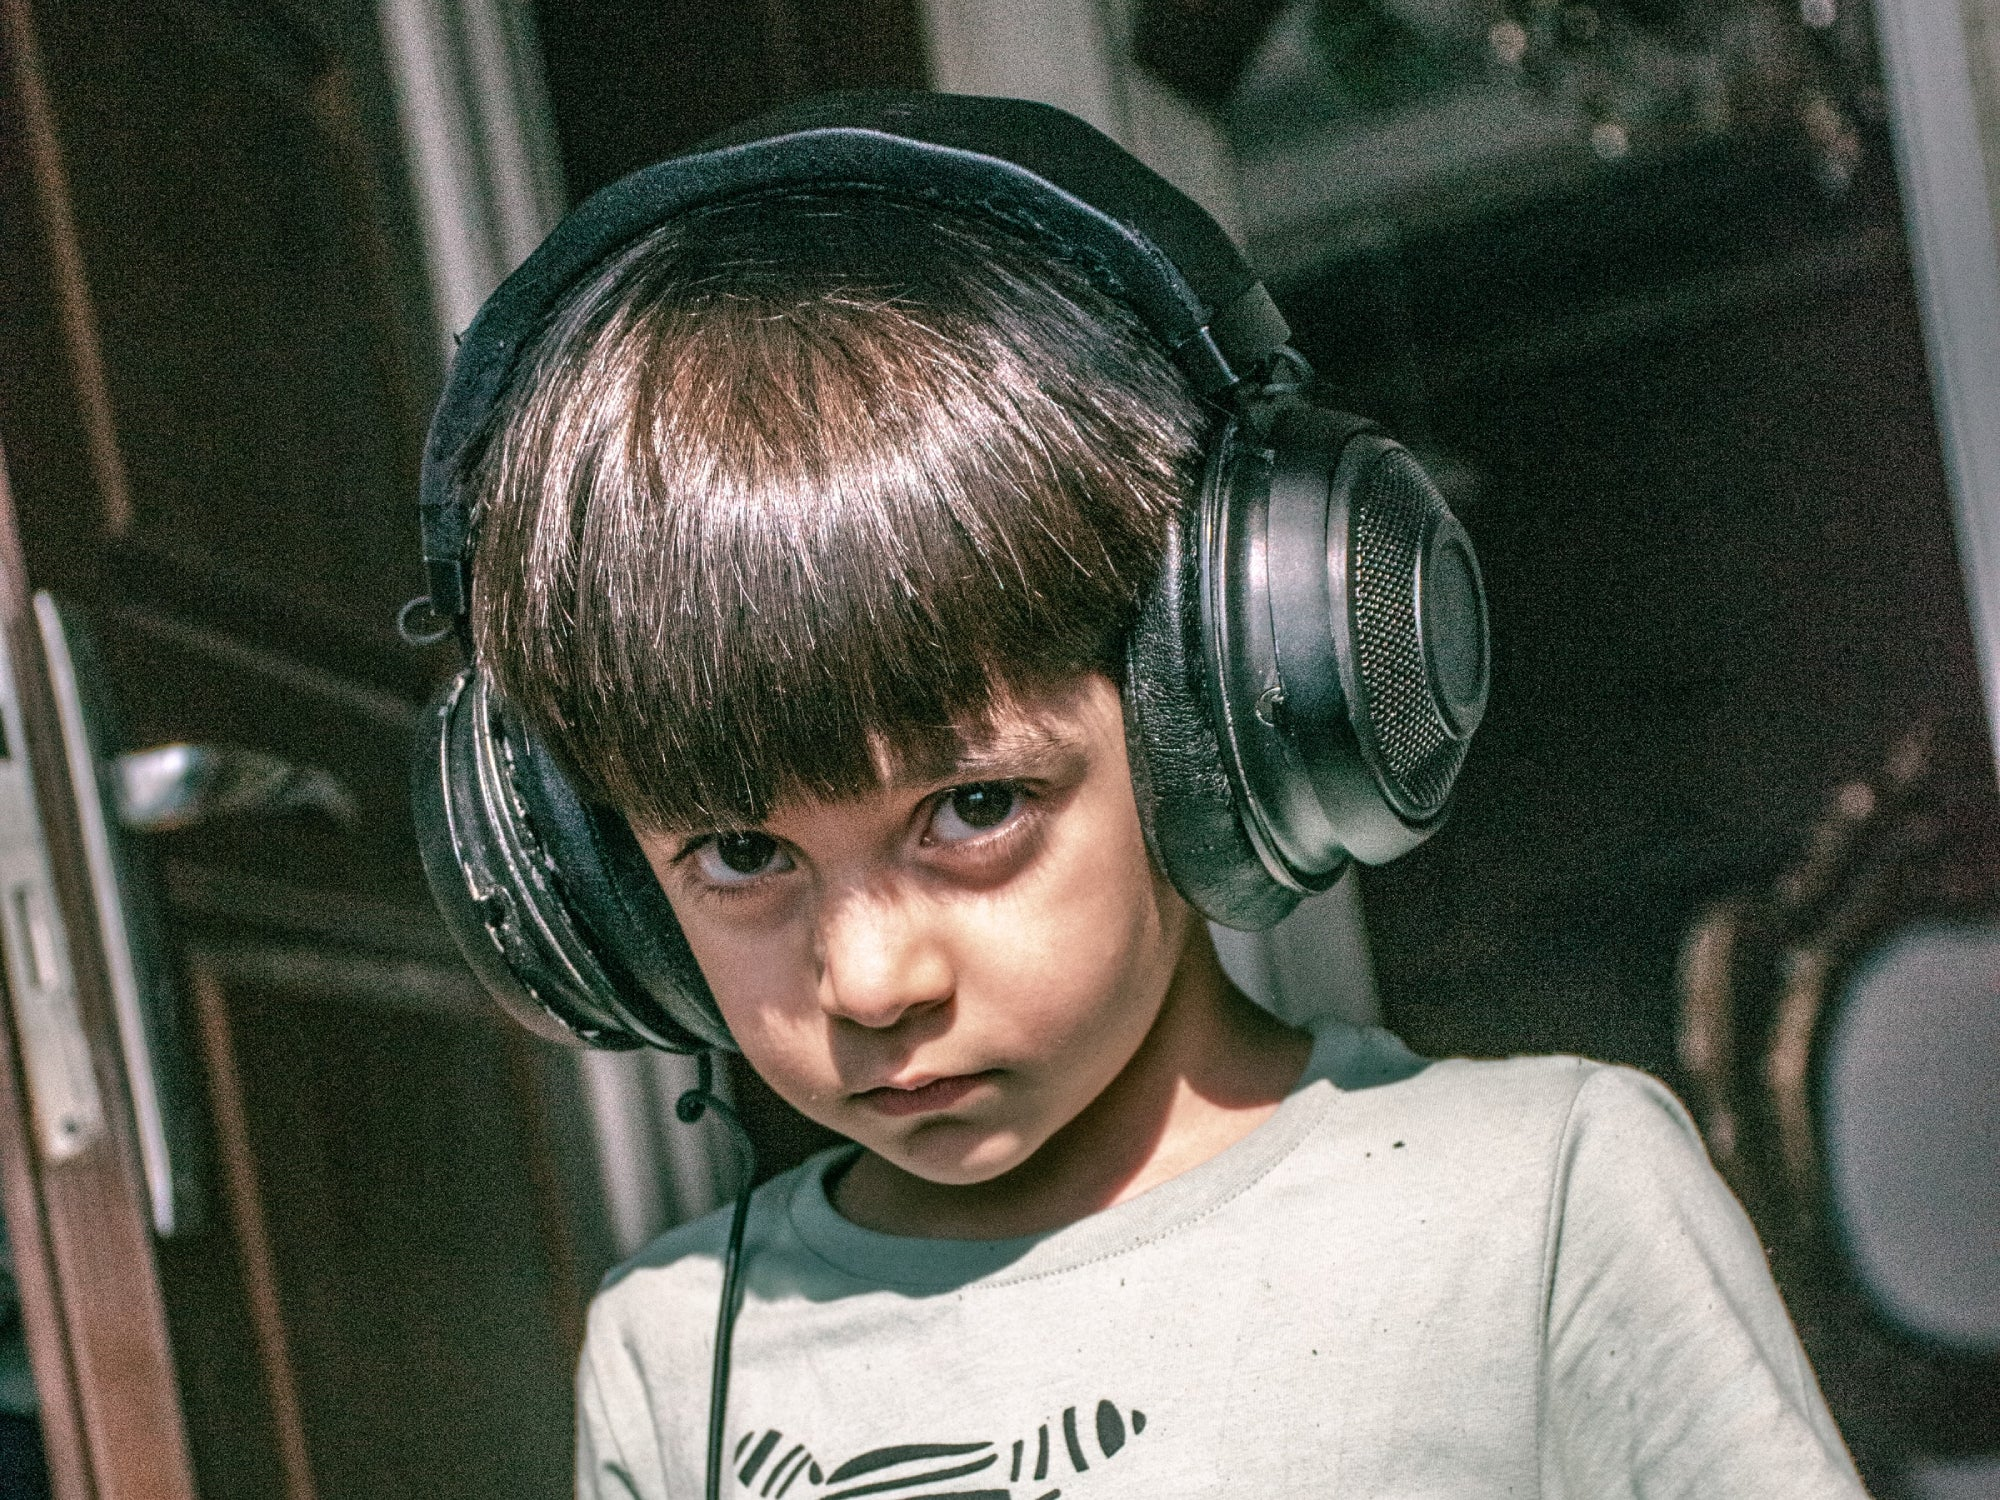 a child wearing large headphones